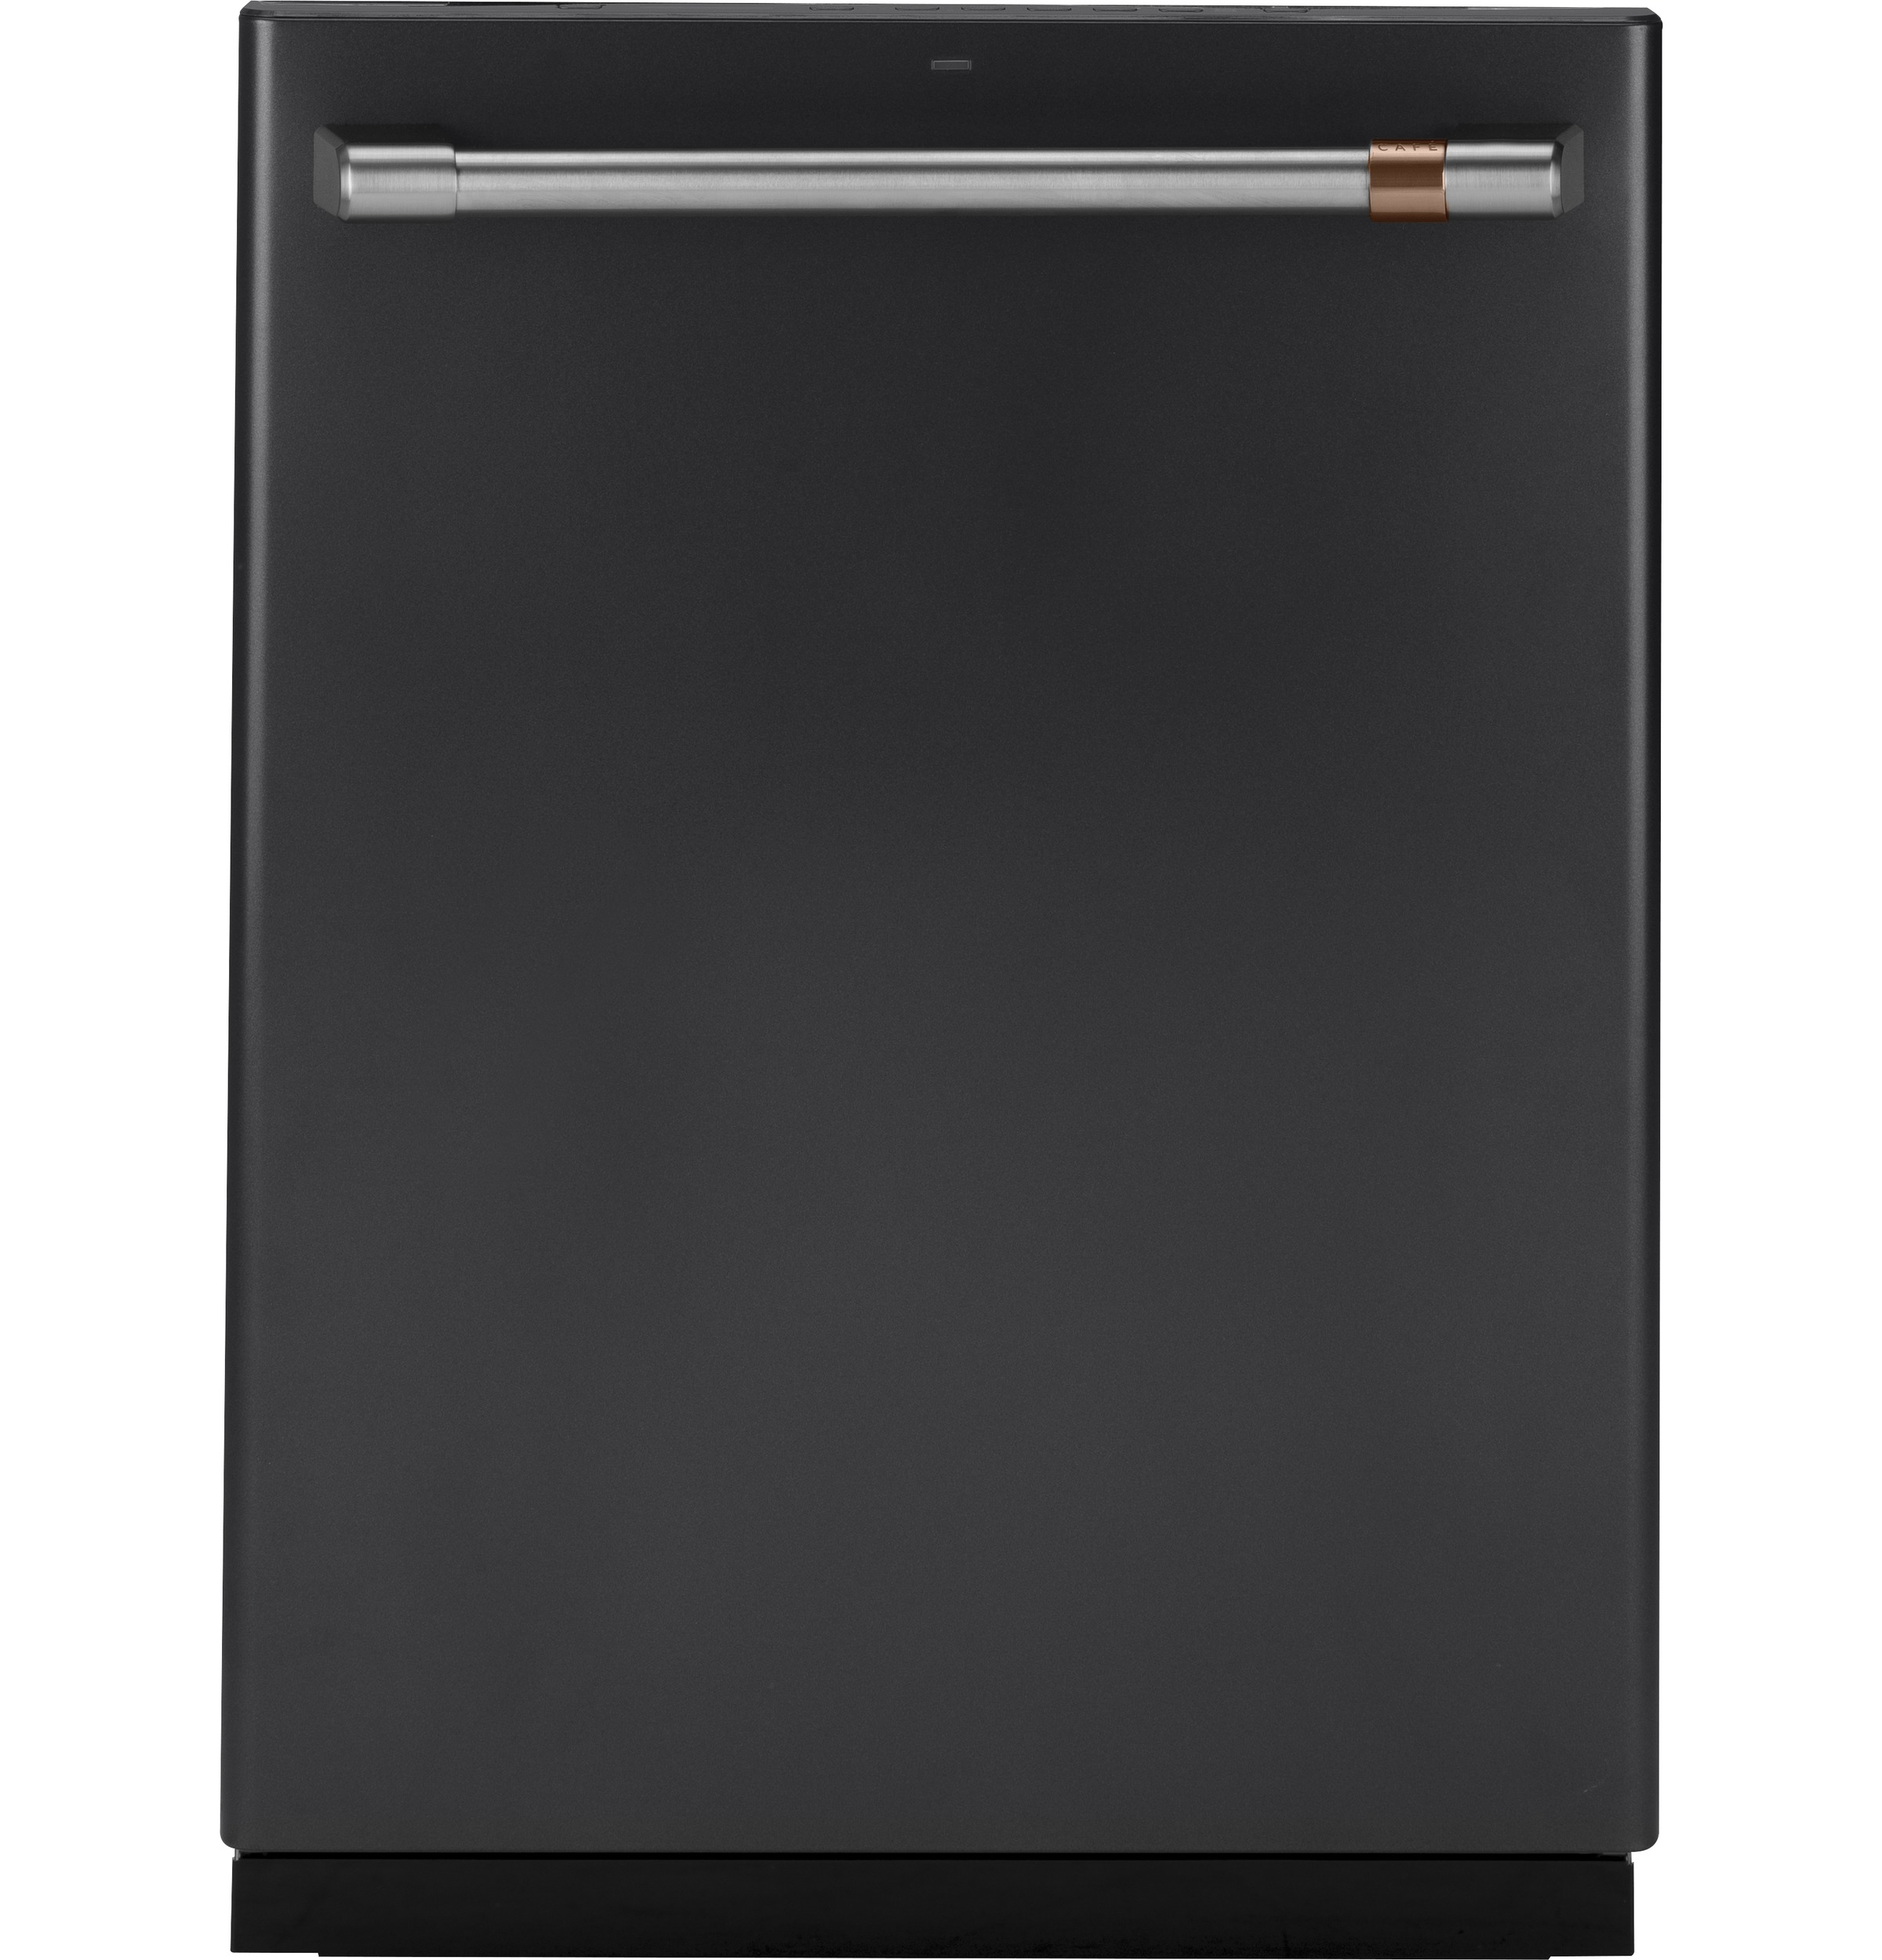 Model: CDT836P3MD1 | Cafe Café™ Stainless Interior Built-In Dishwasher with Hidden Controls